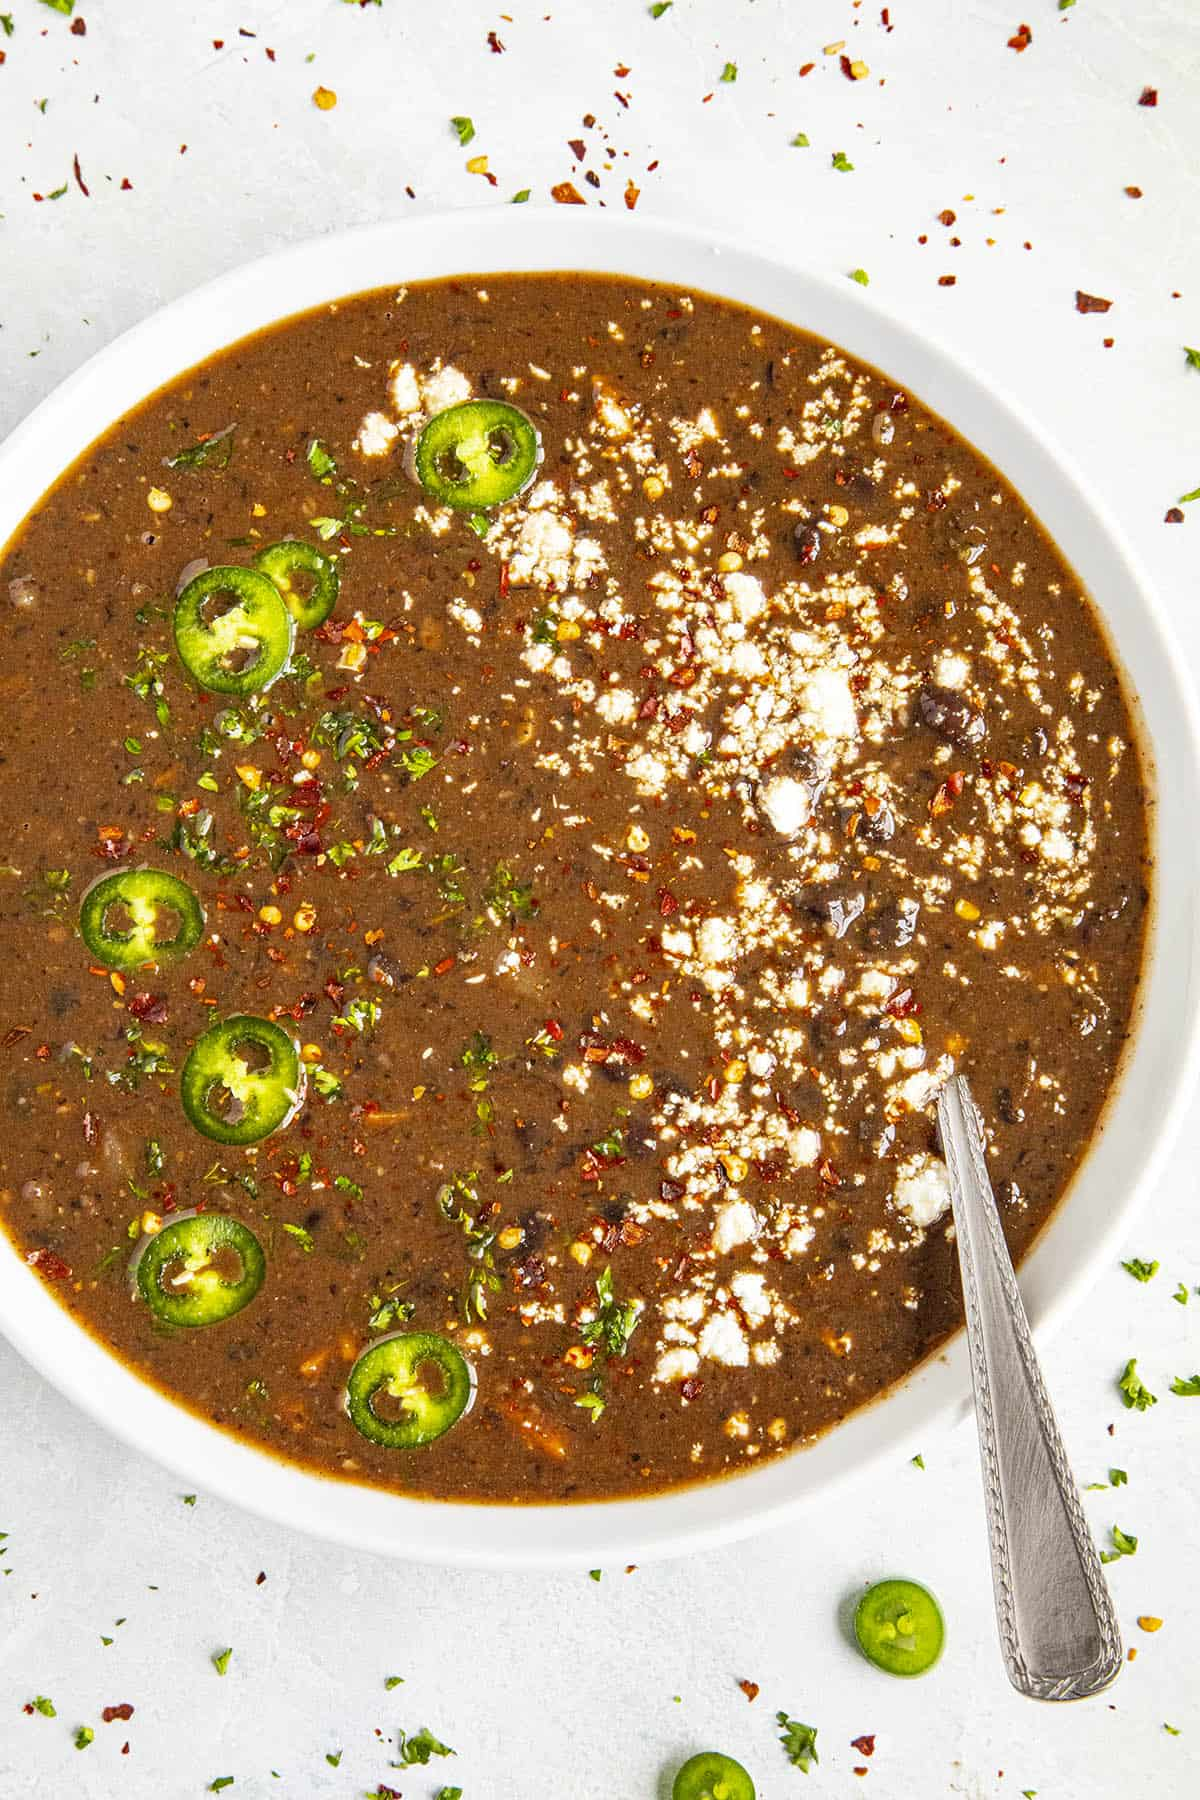 Black Bean Soup garnished with sliced peppers and crumbly white cheese